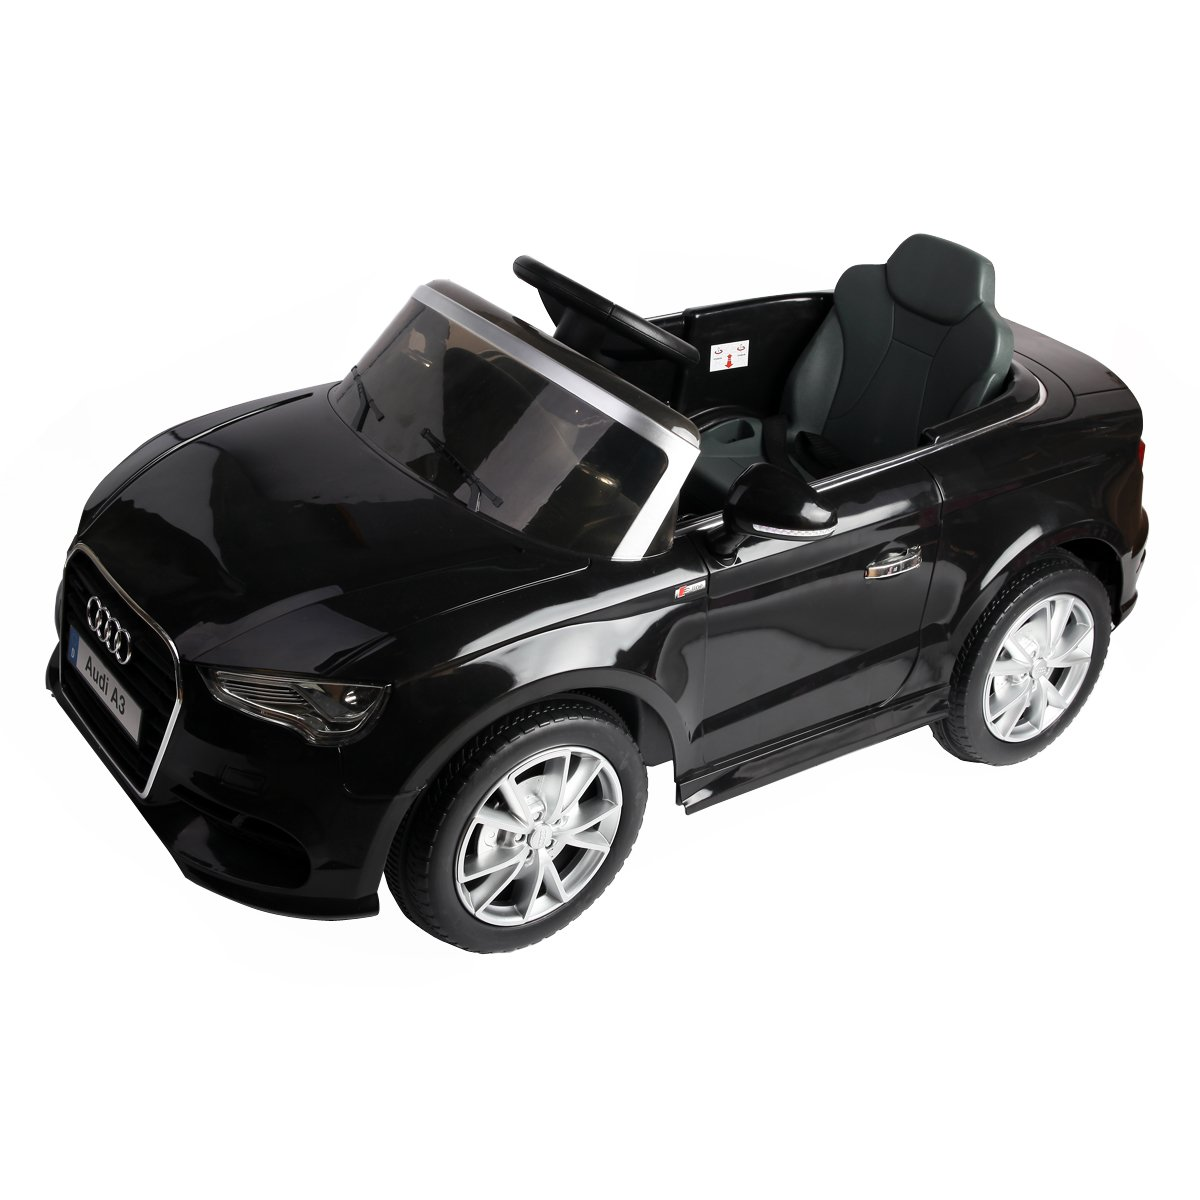 Costzon Licensed Audi A3 Kids Ride On Car 12V Battery Powered RC Riding Toy Vehicle W/LED Light by Costzon